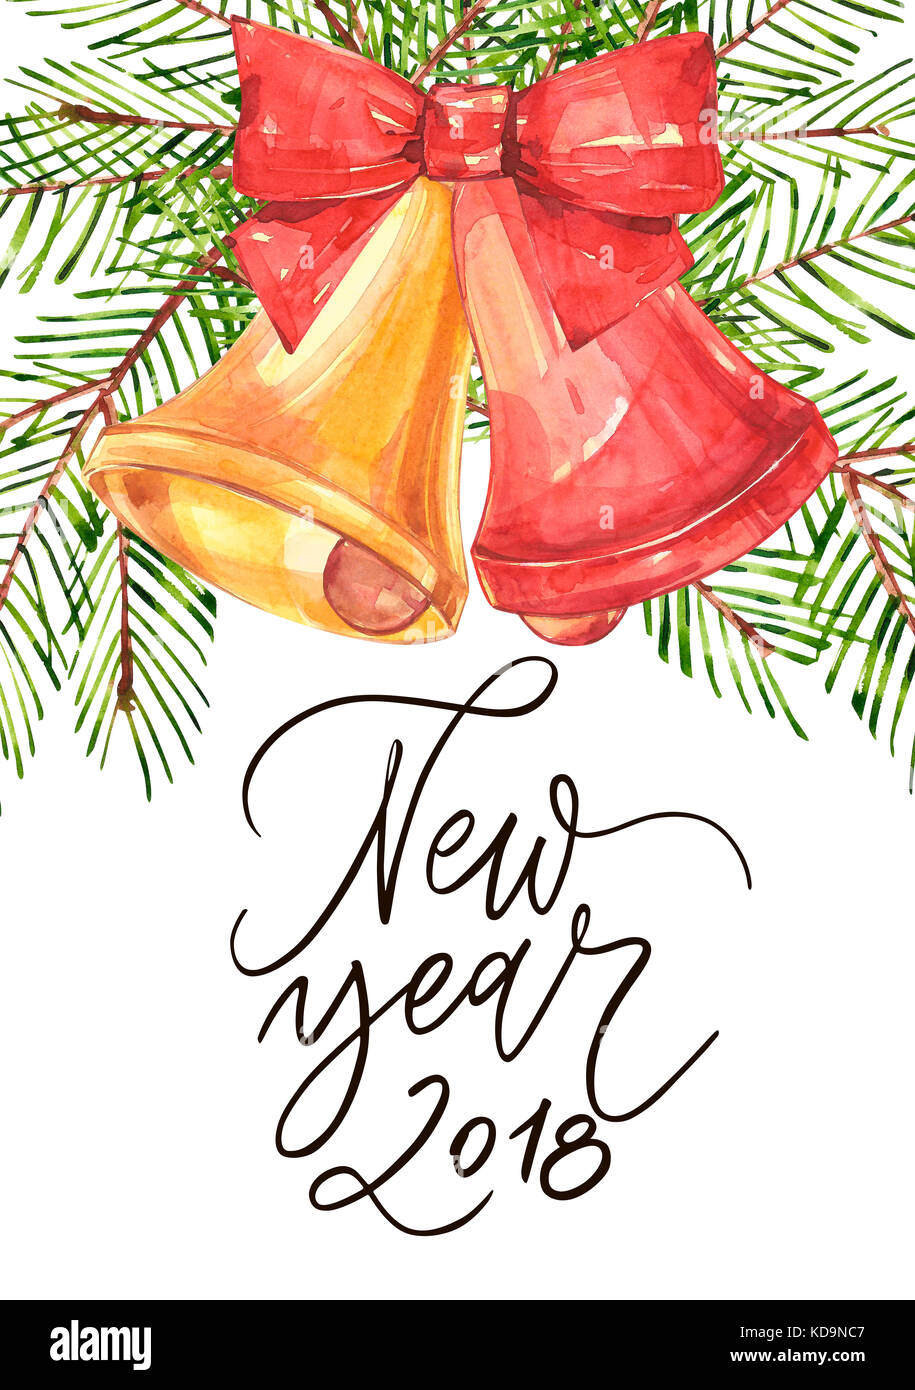 happy new year 2018 phrase holiday lettering illustration illustration in watercolor style of bells and bow and xmas trees isolated on white background